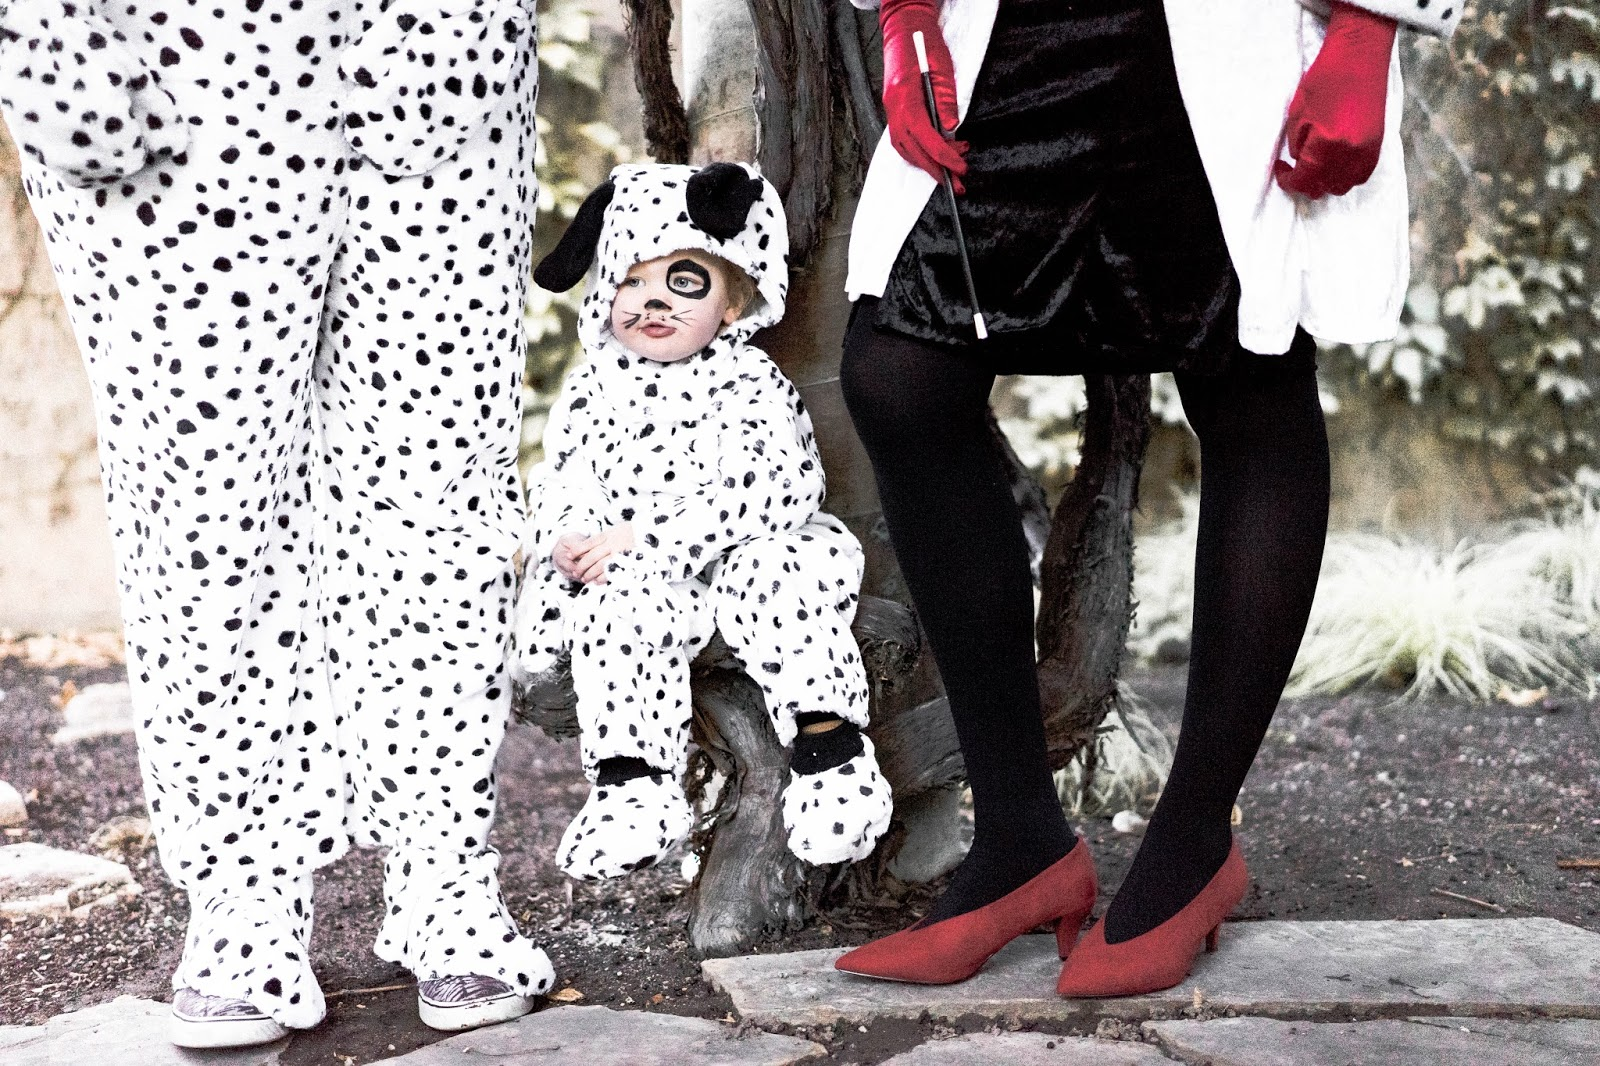 101 dalmation costumes, halloween costumes